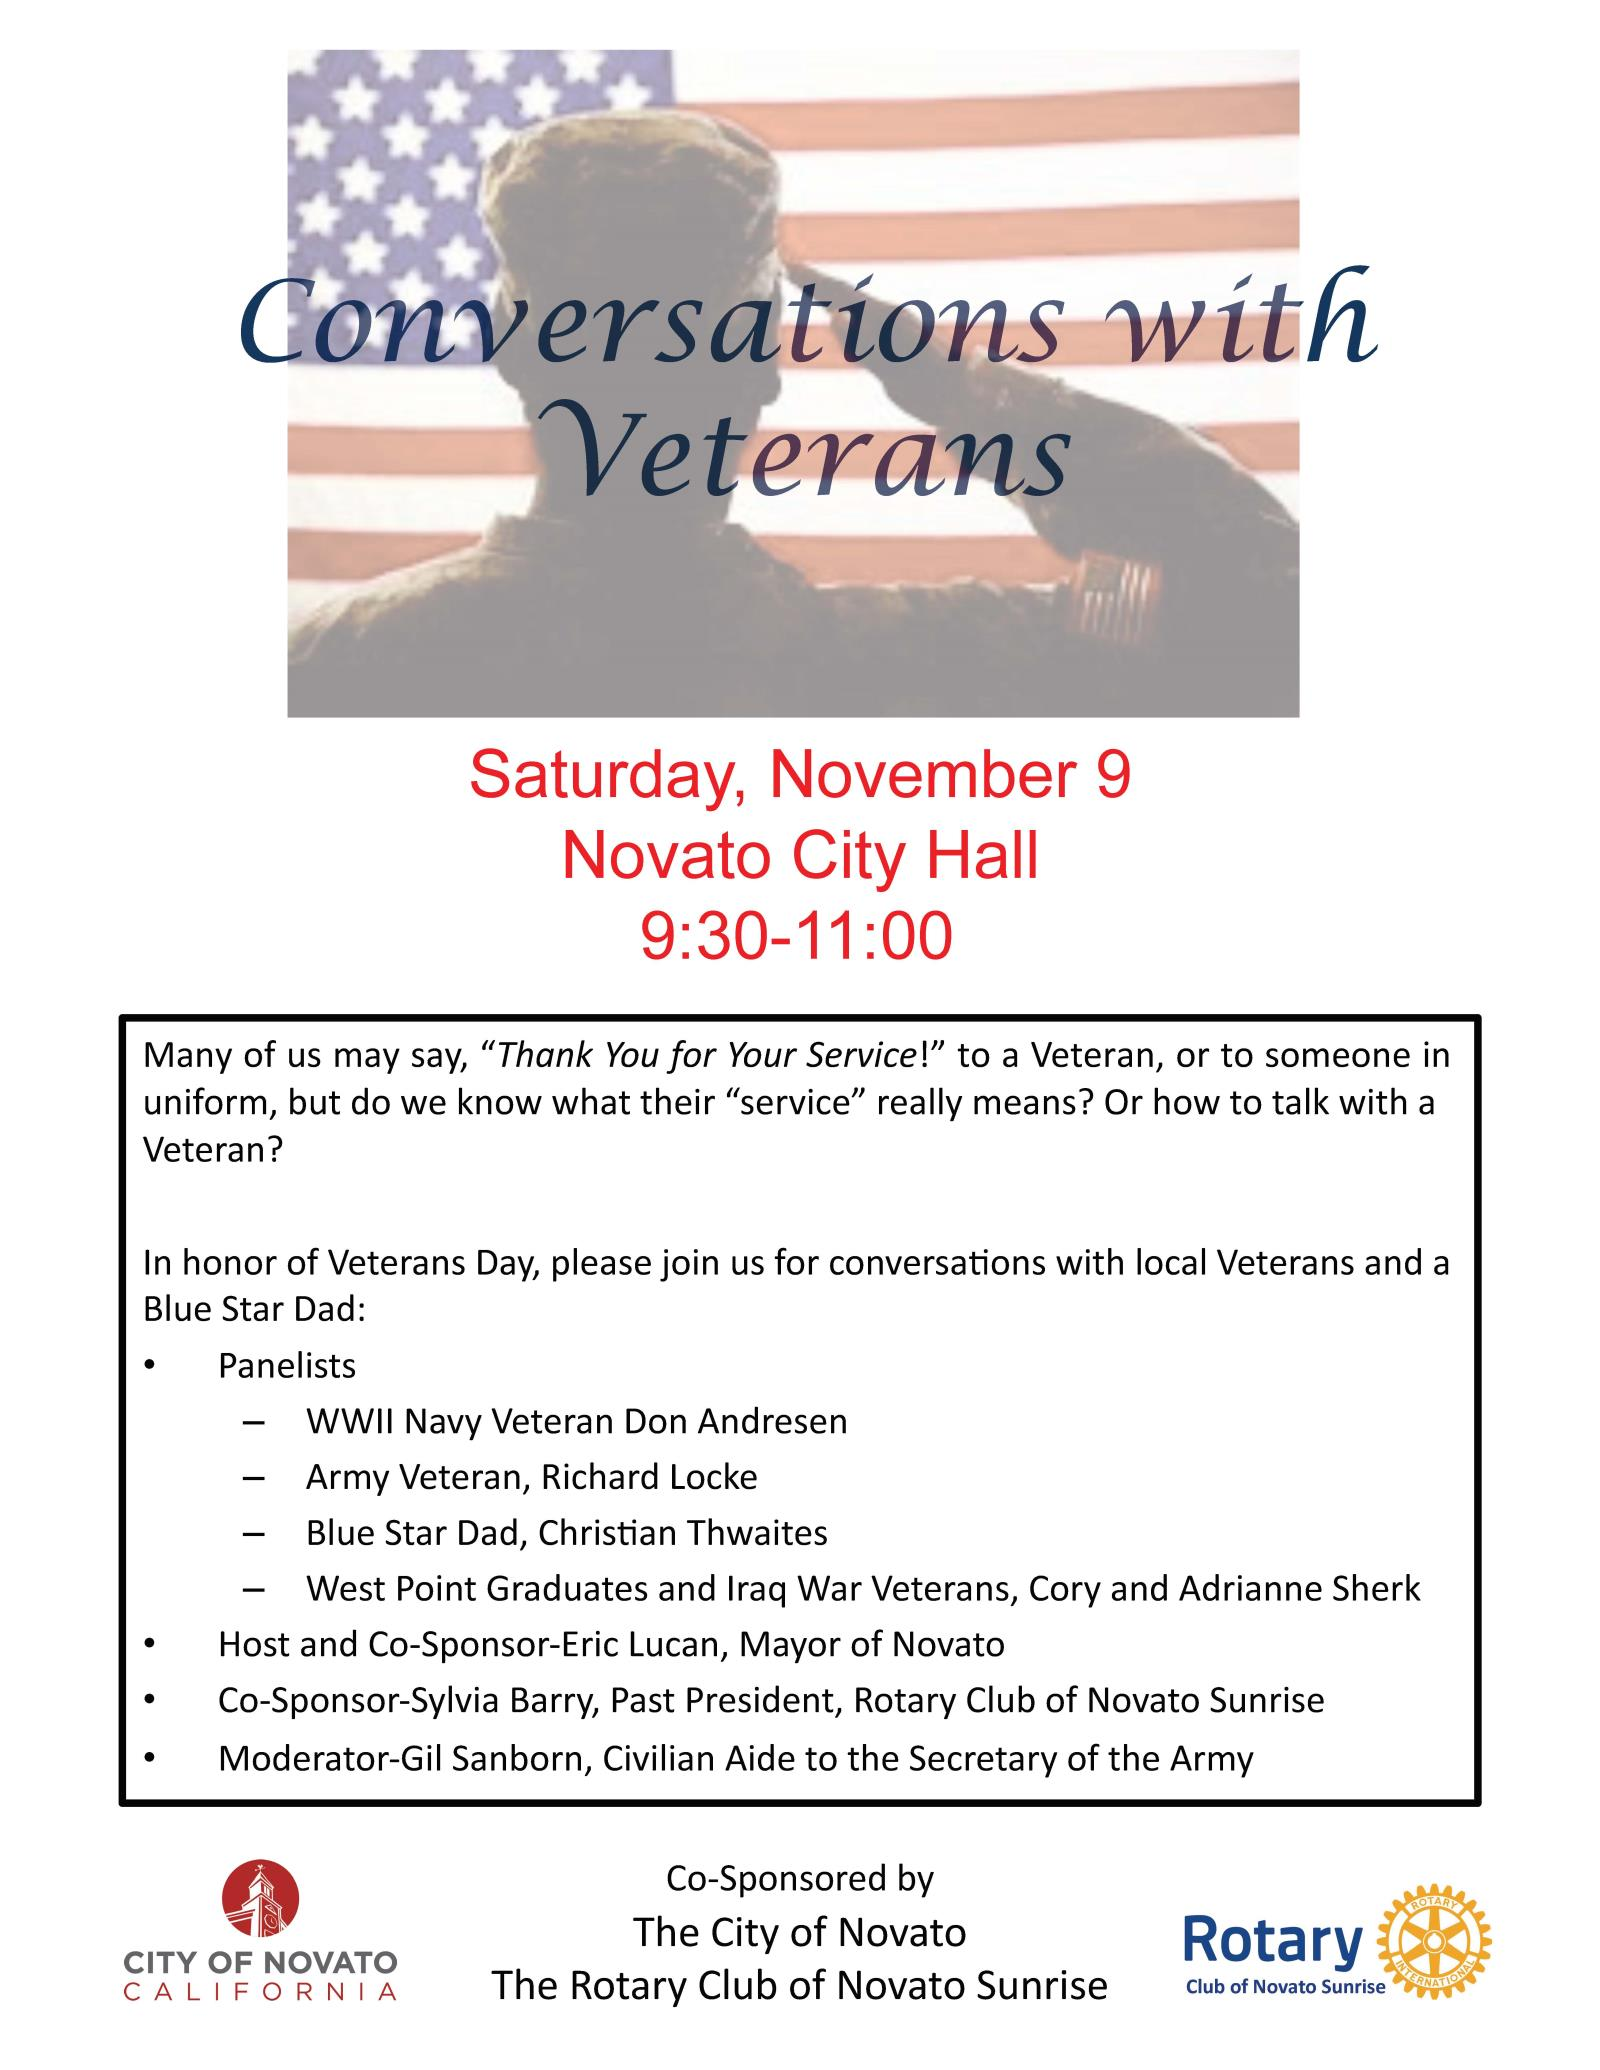 Image of Flyer for Conversations with Veterans